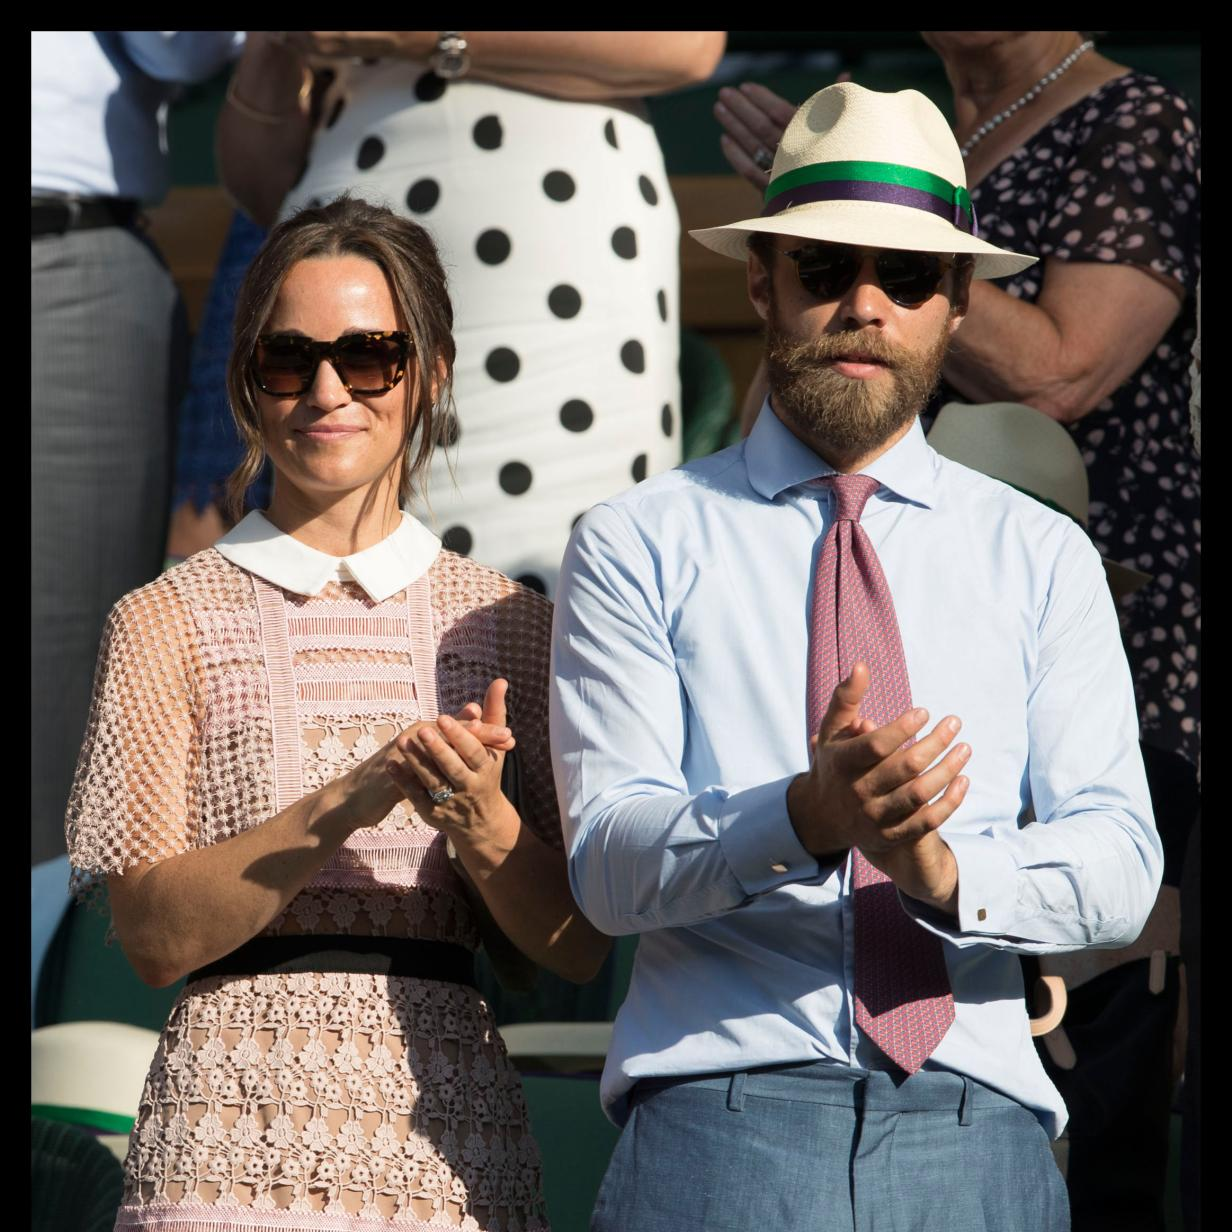 James Middleton: Bekanntheit durch Kate machte ihn krank